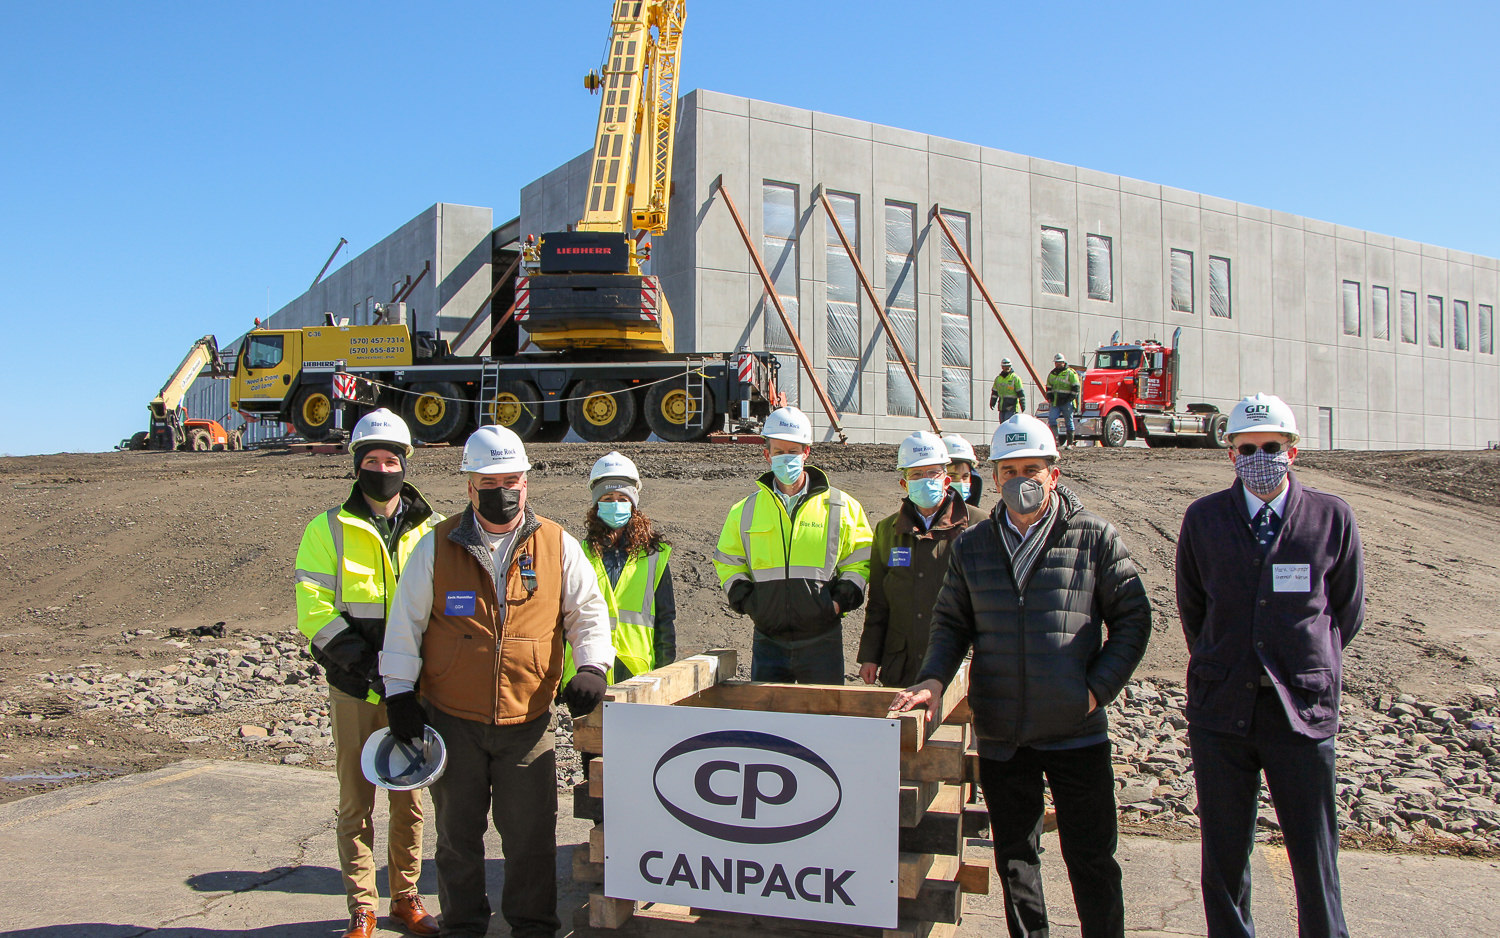 Group of constructors and consultants in front of construction site